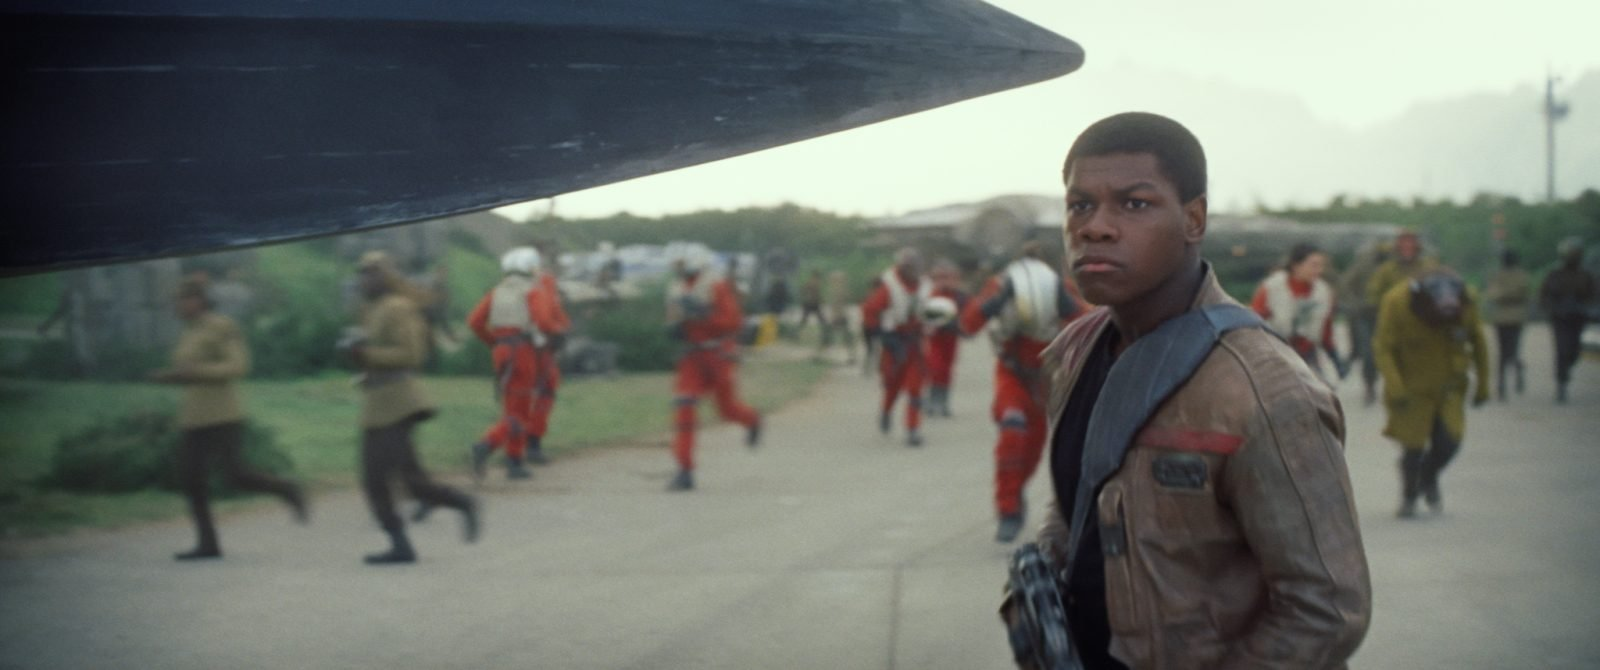 Star Wars VII The Force Awakens 4 - Finn with Resistance Soldiers